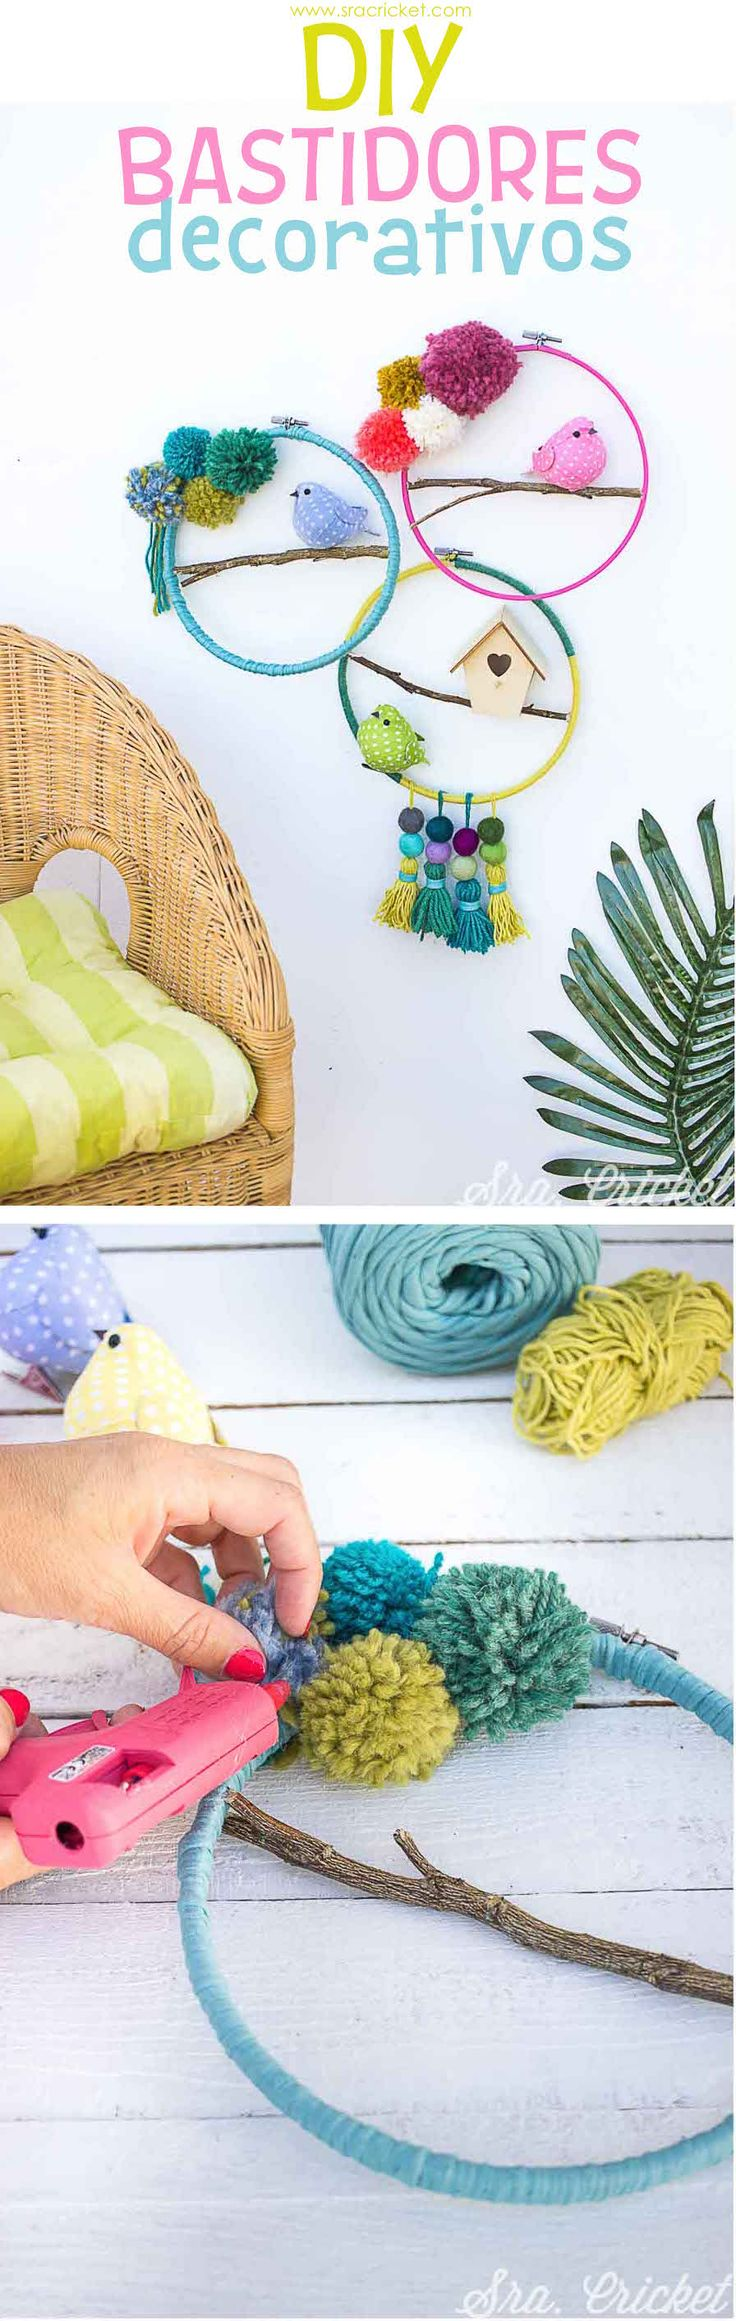 Decorar la pared con bastidores. Cómo hacer unos bastidores DIY decorativos. #bastidores #DIY #decoraciondepared #decorarconbastidores Mehndi Decor, Holiday Decorating, Decorating Ideas, Relief Society, Embroidery Ideas, Ideas Para, Fathers Day, 4th Of July, Crochet Earrings